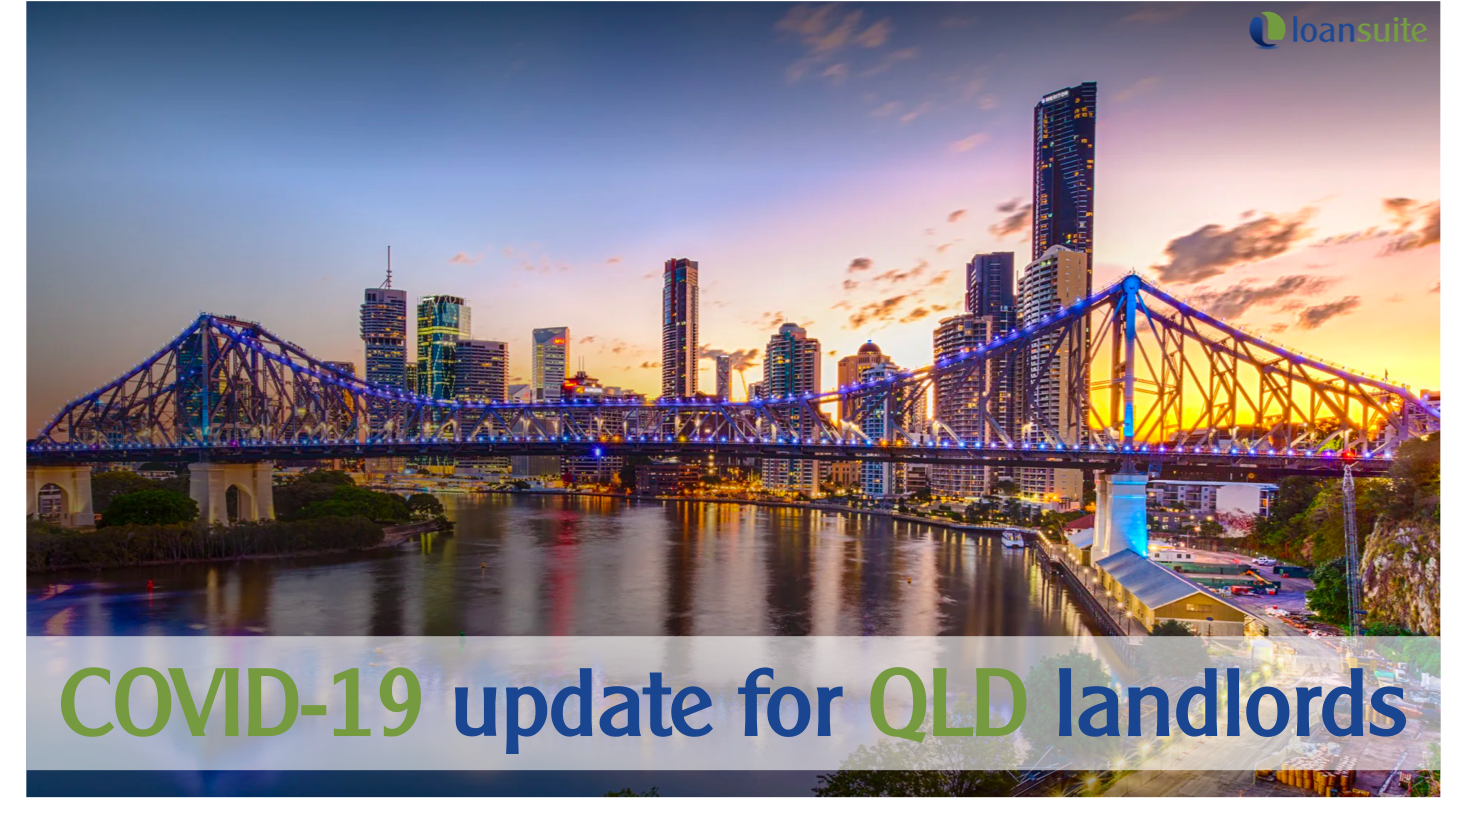 COVID-19 Update for Queensland Landlords - Loansuite - Mortgage Broker